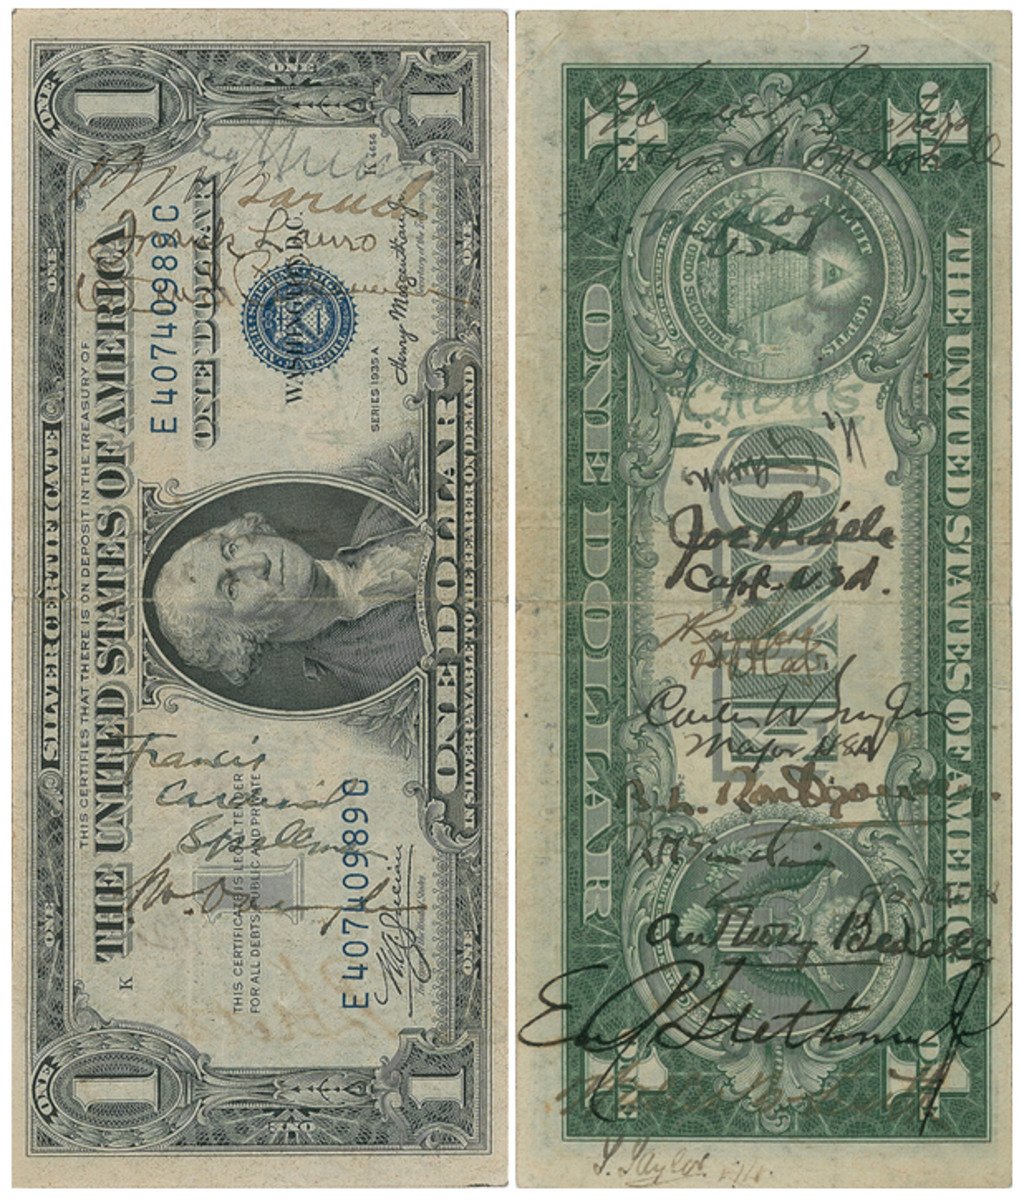 Face and back of World War II snorter bearing the signatures of both Truman and Stalin that was sold for $14,649.78 by RR Auction this past November. (Images courtesy RR Auction)